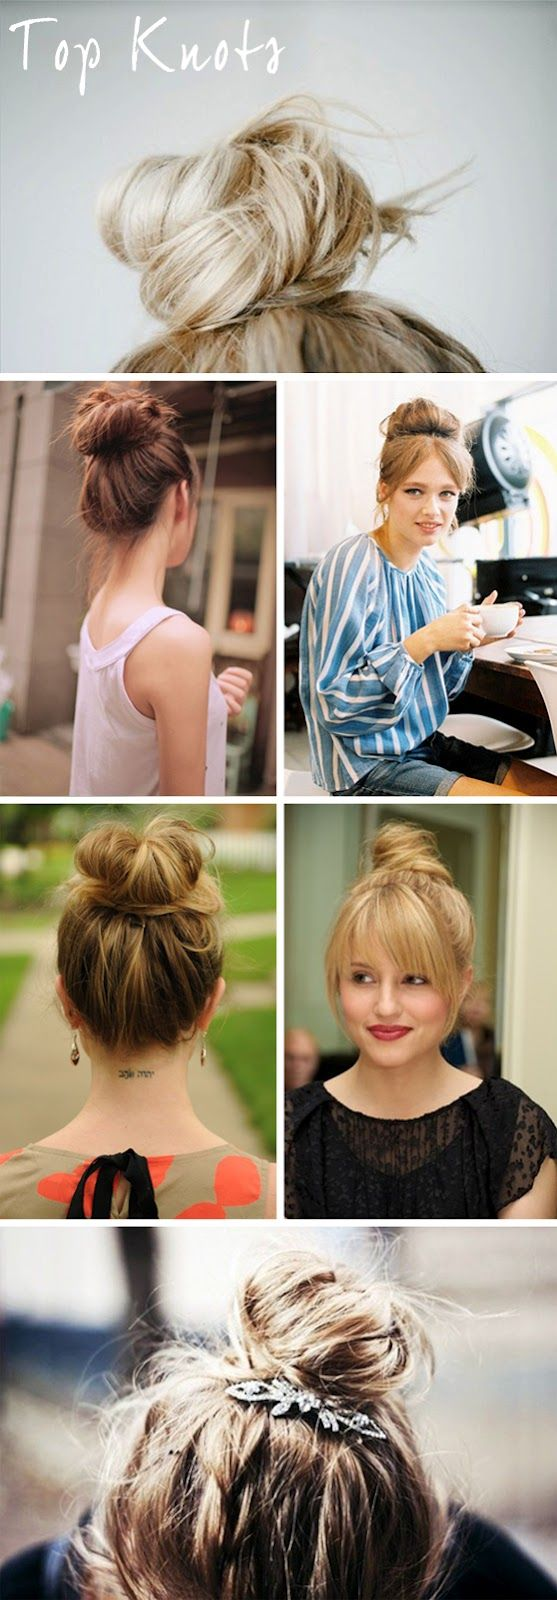 buns LOVE - I have been doing this very casual easy look lately and it's so easy!